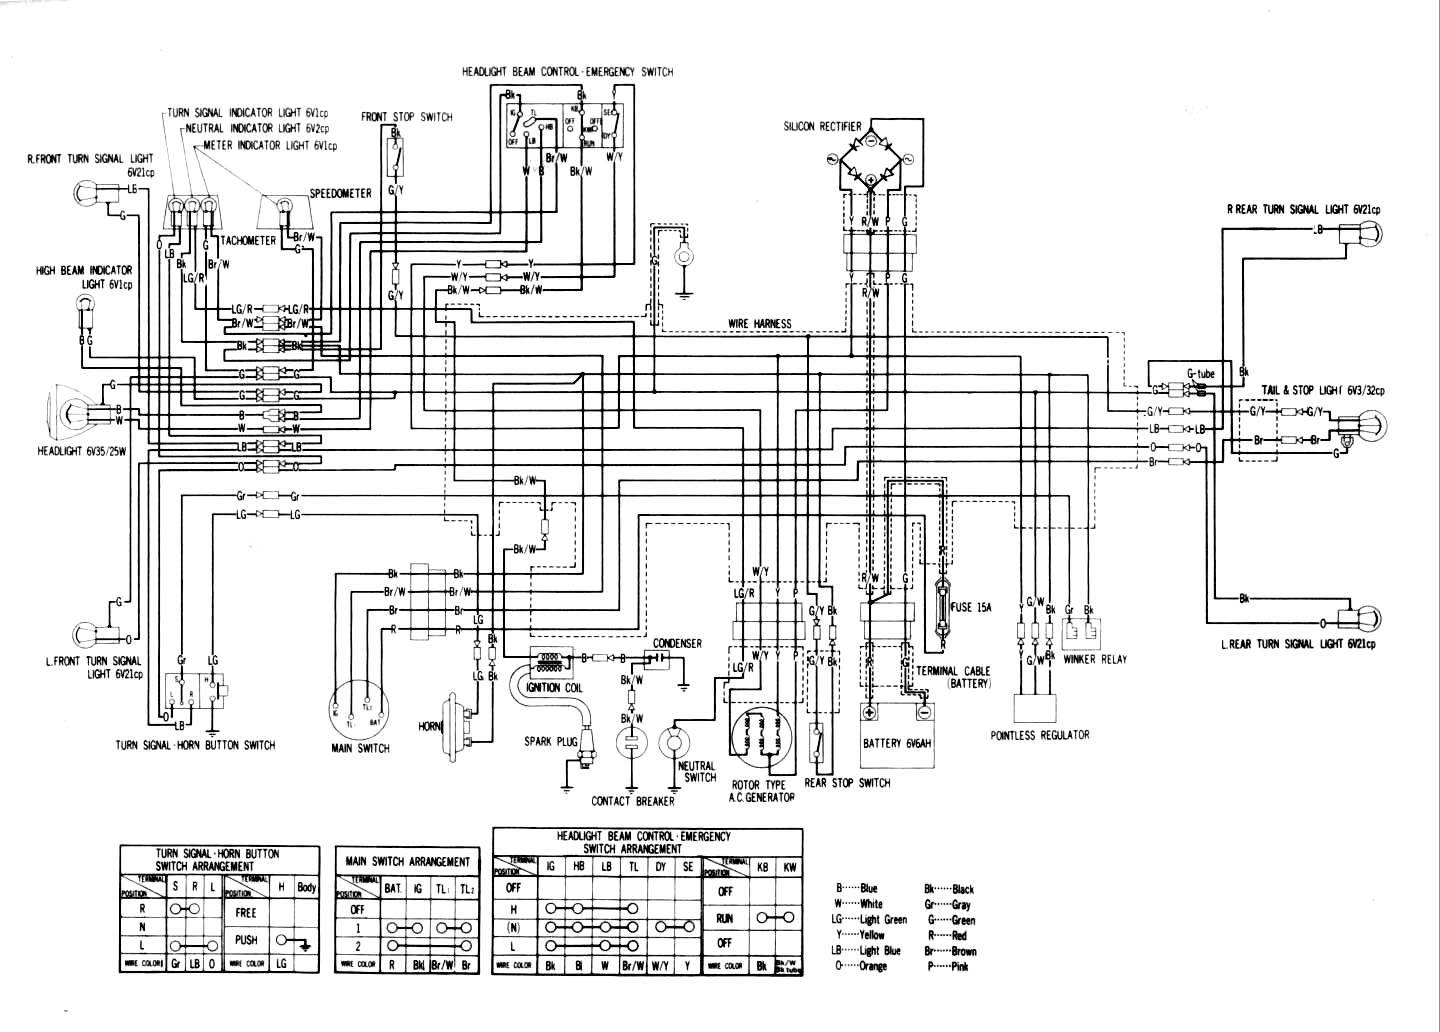 Wiring diagram honda beat free about and